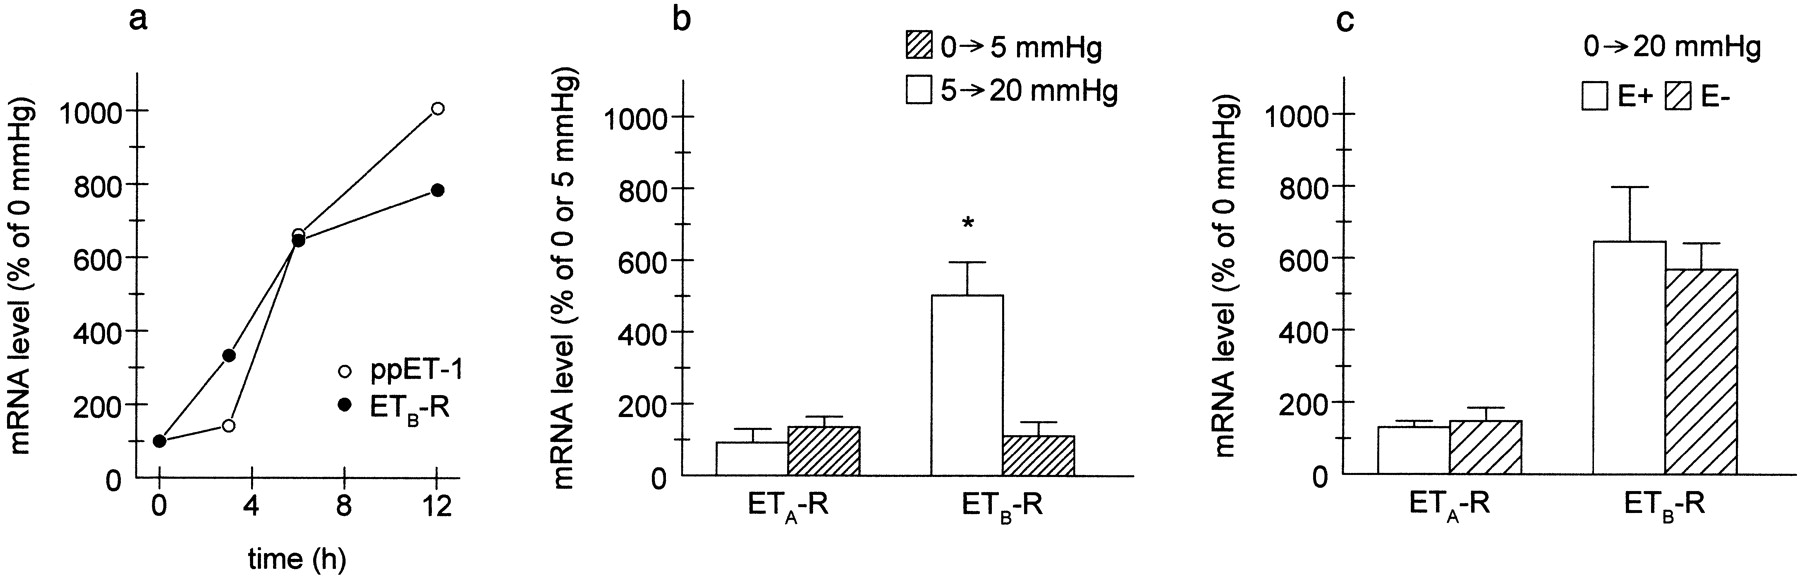 Pressure-Induced Upregulation of Preproendothelin-1 and Endothelin B